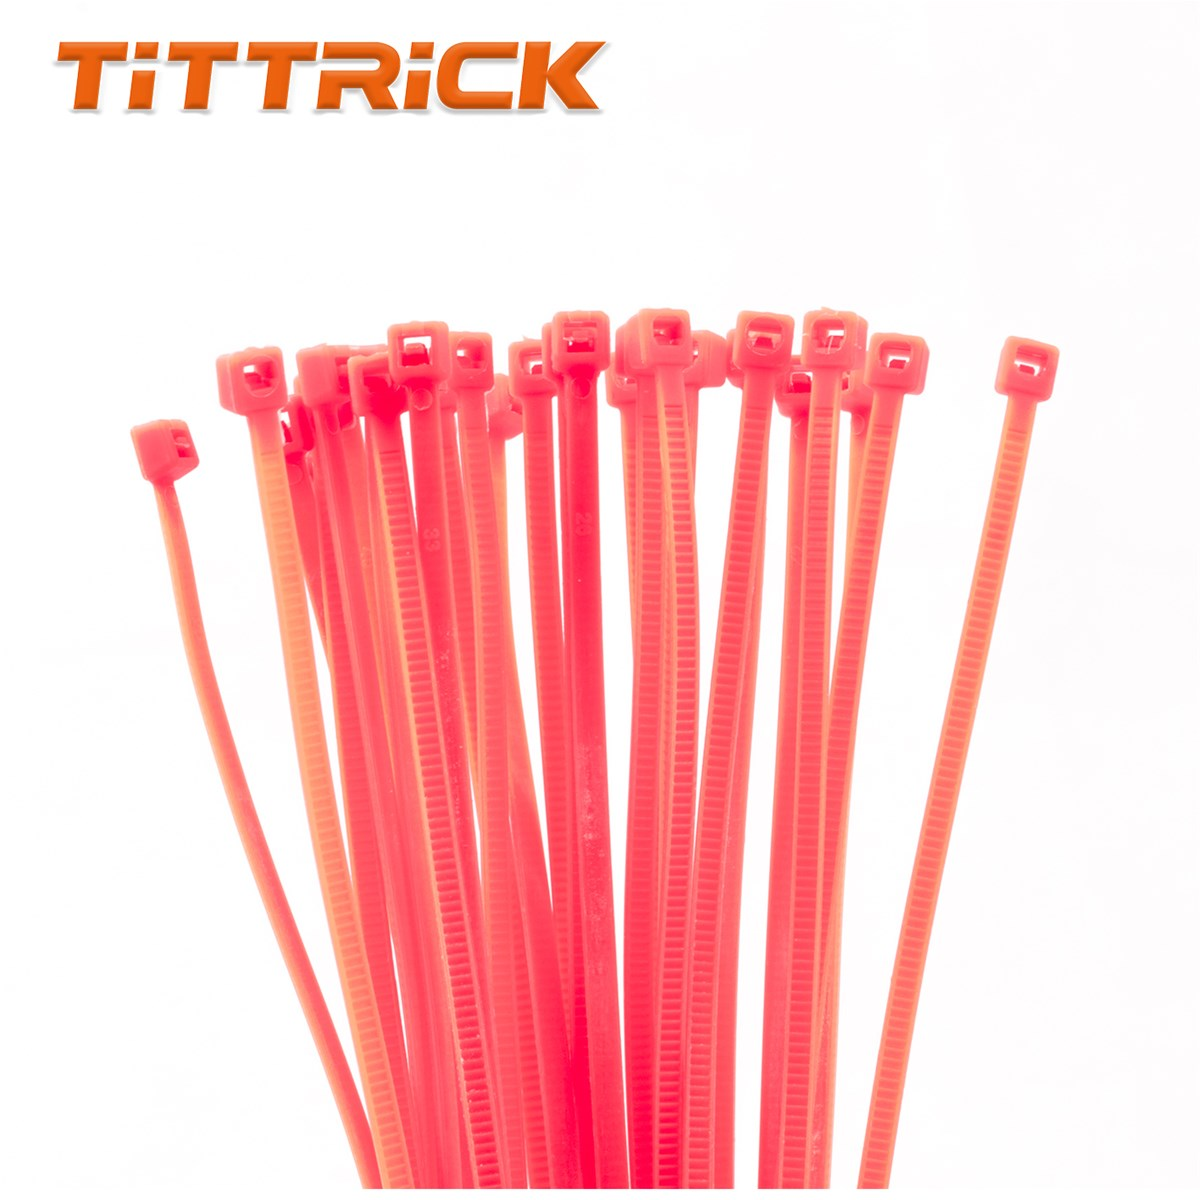 Tittrick 300mm Multi Color Self-Locking Flexible Plastic Cable Ties Nylon 66 Zip Cable Tie